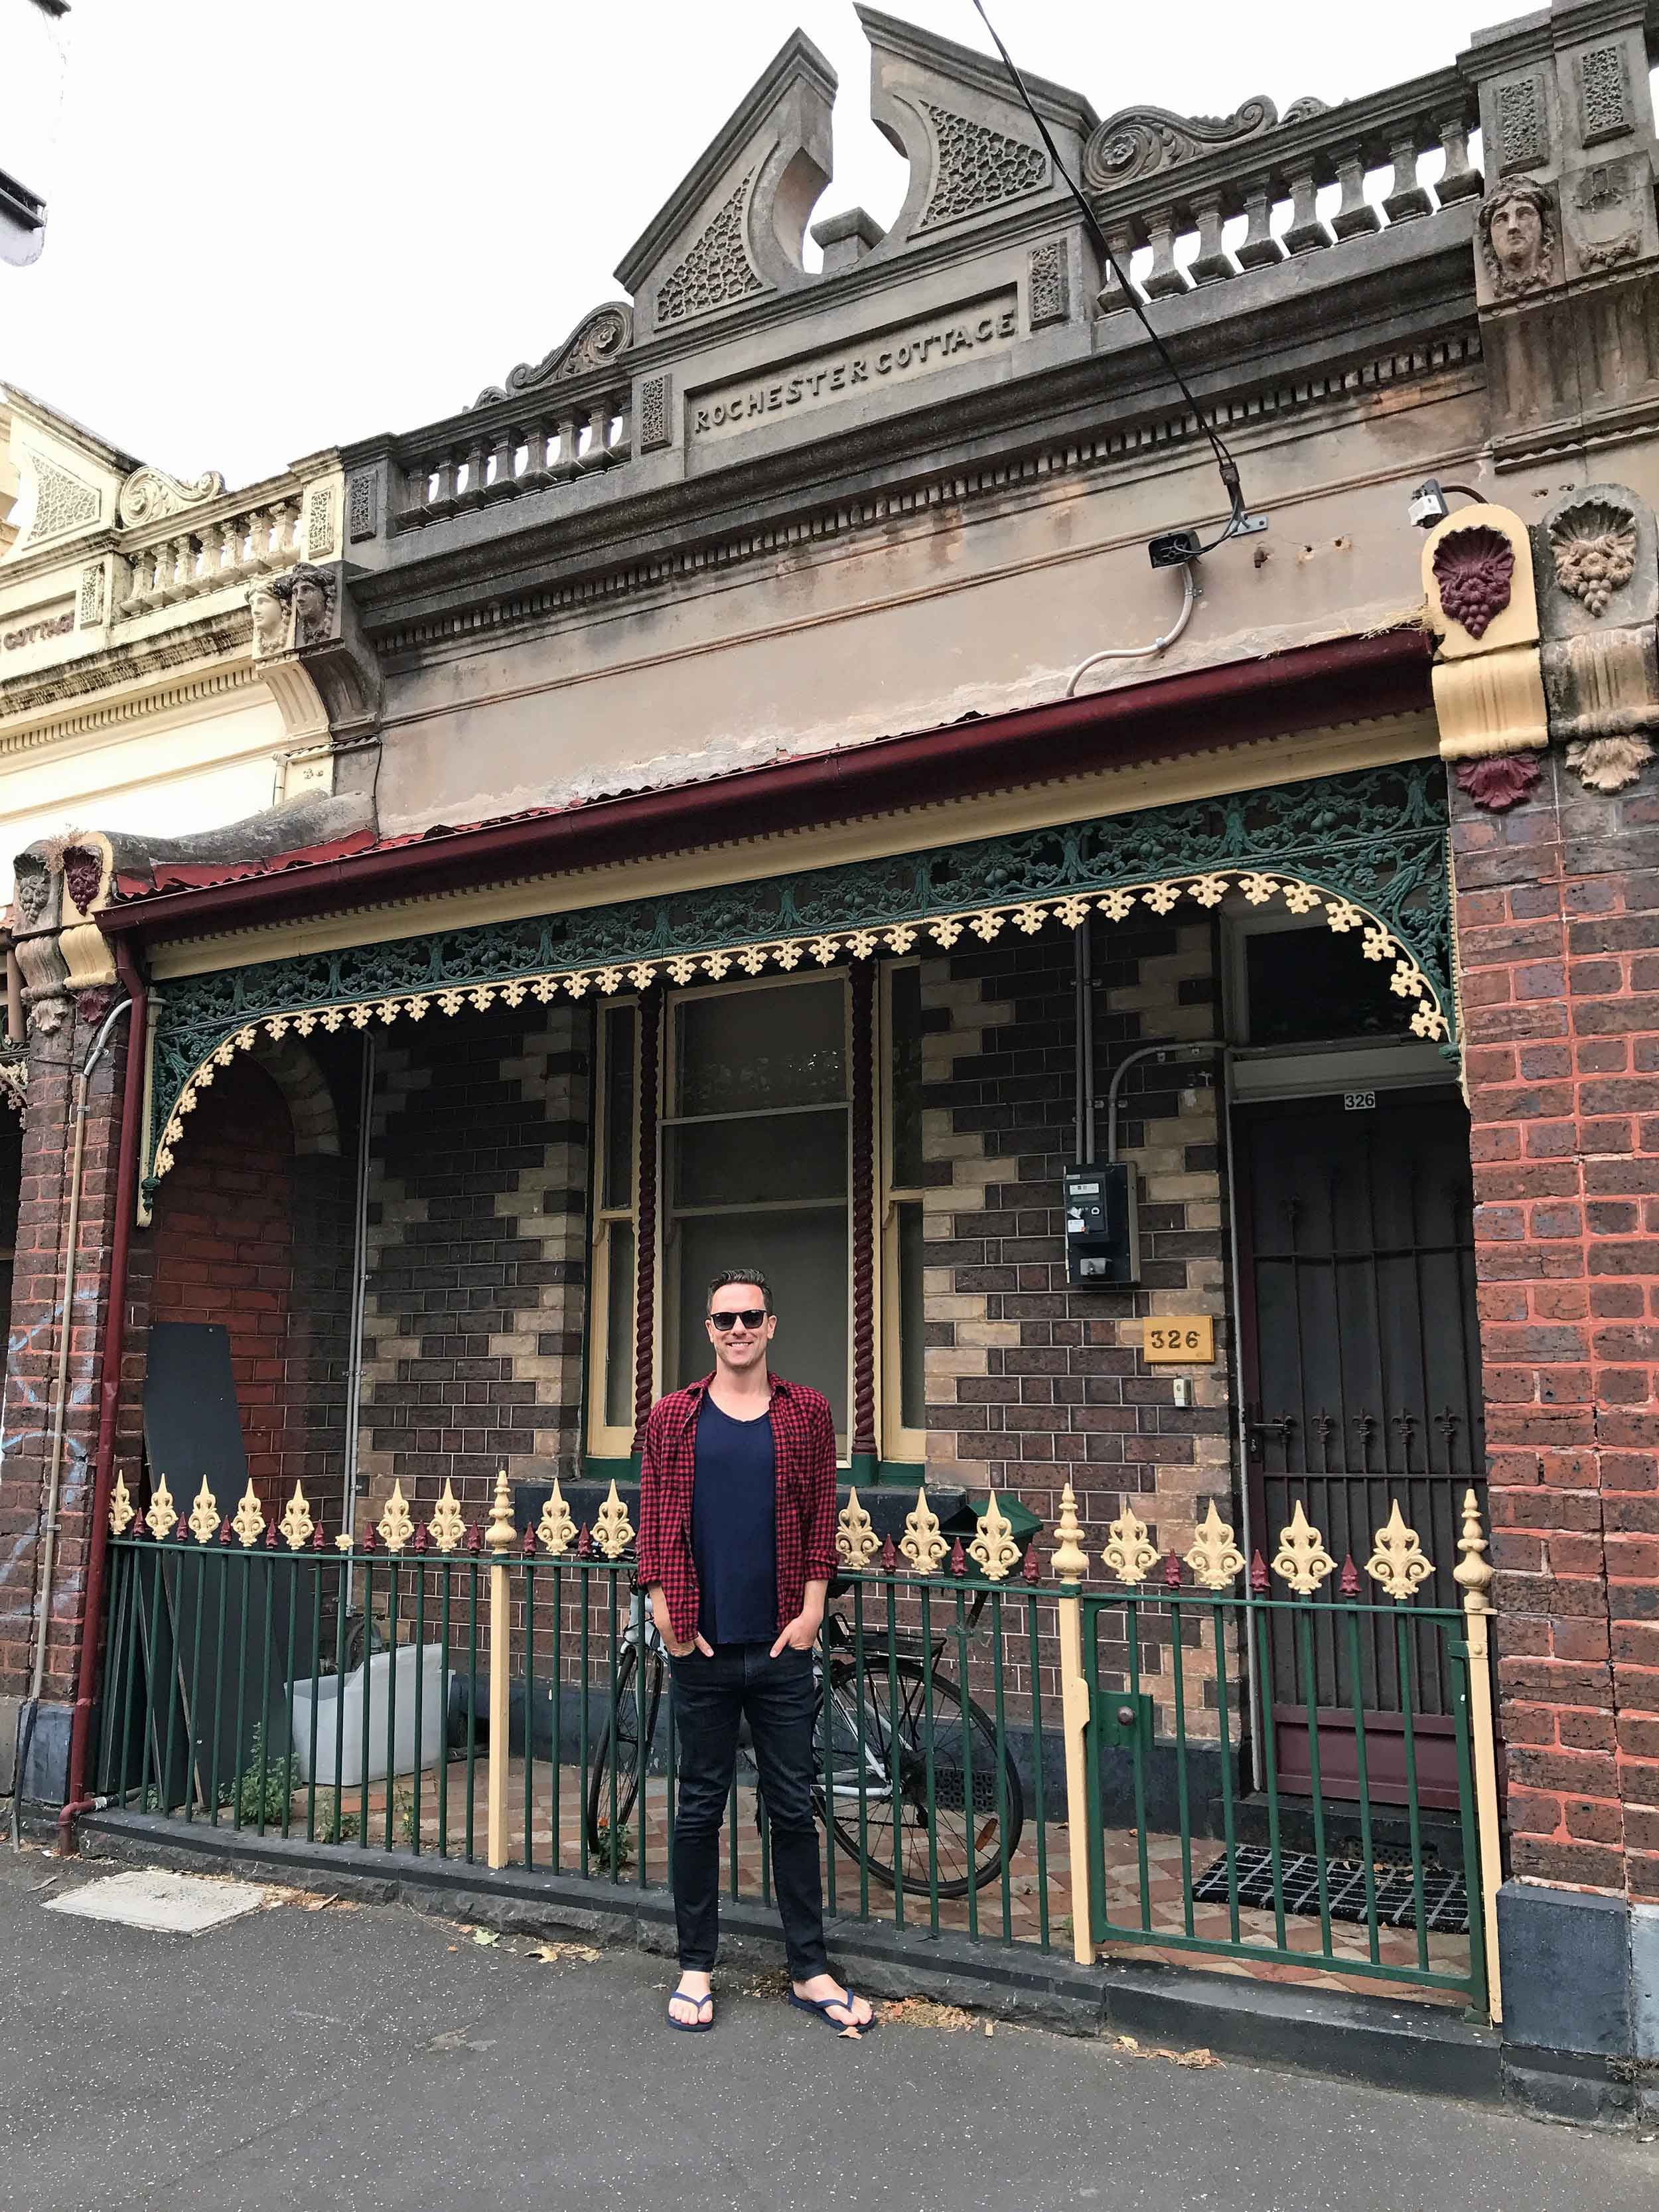 The prodigal son returns! Martin's former terrace apartment on Rathdowne Street in North Carlton, Melbourne (Jan 26).